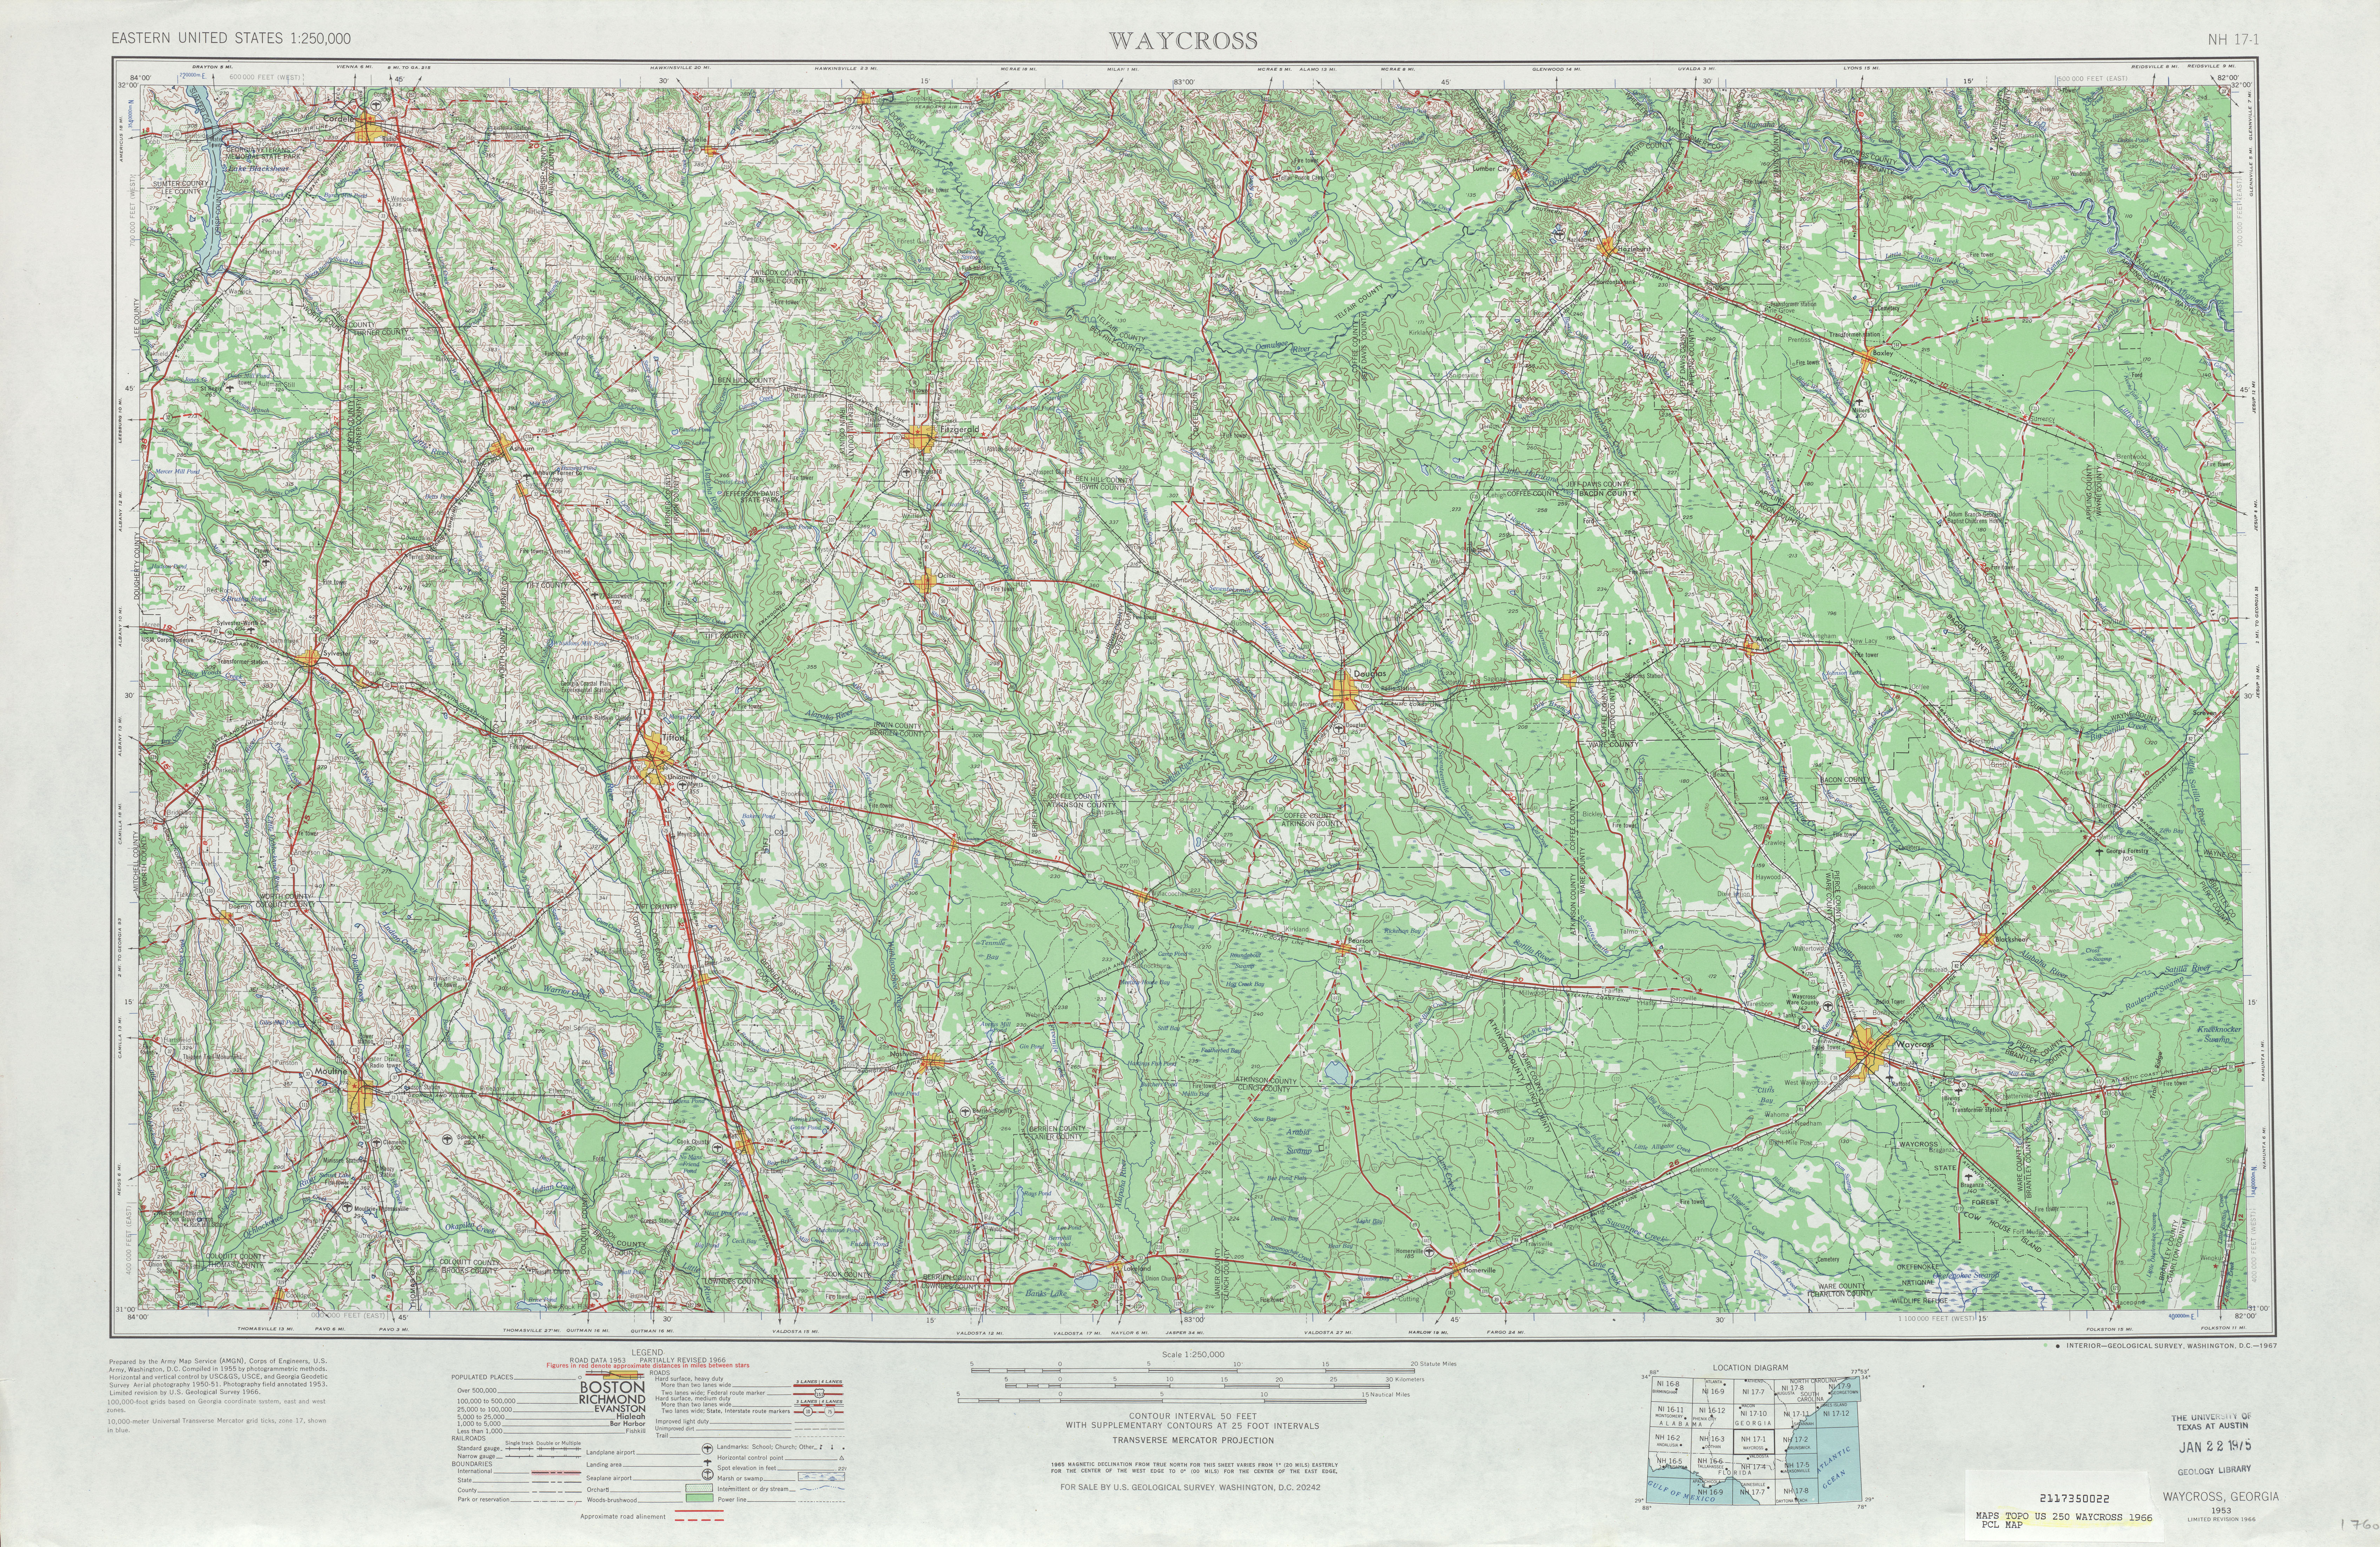 Waycross Topographic Map Sheet, United States 1966